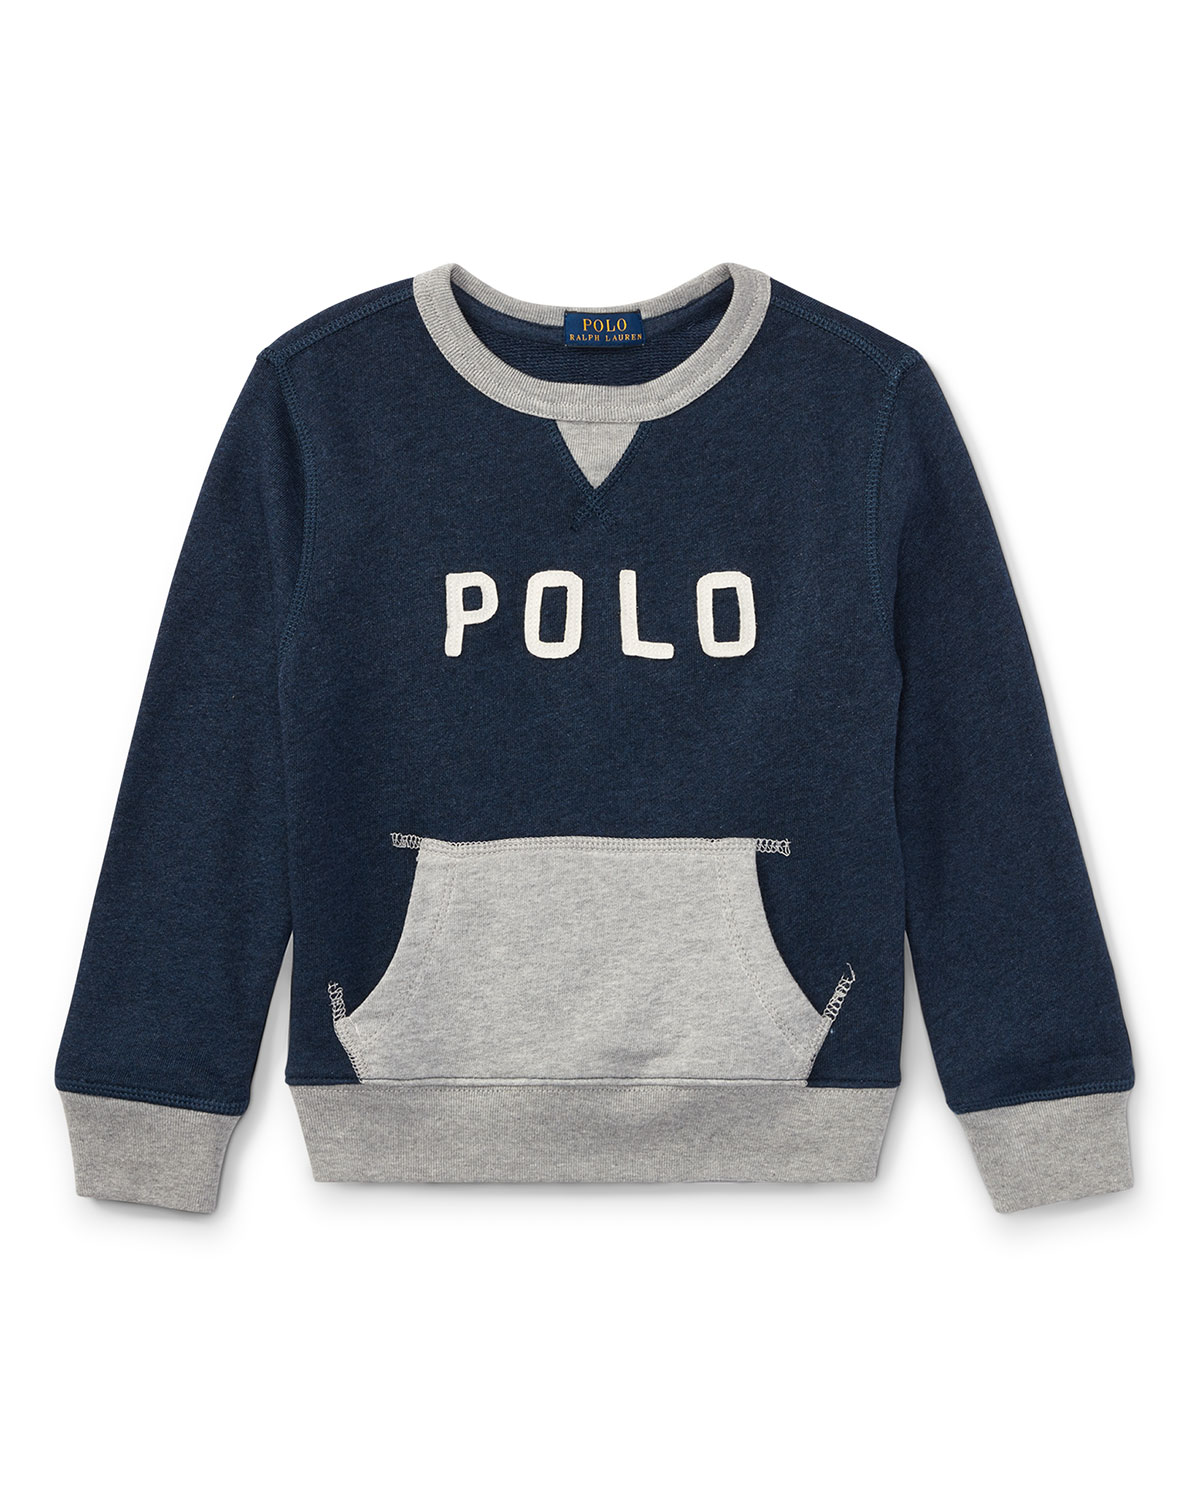 Lightweight Terry Two-Tone Graphic Sweatshirt, Size 5-7